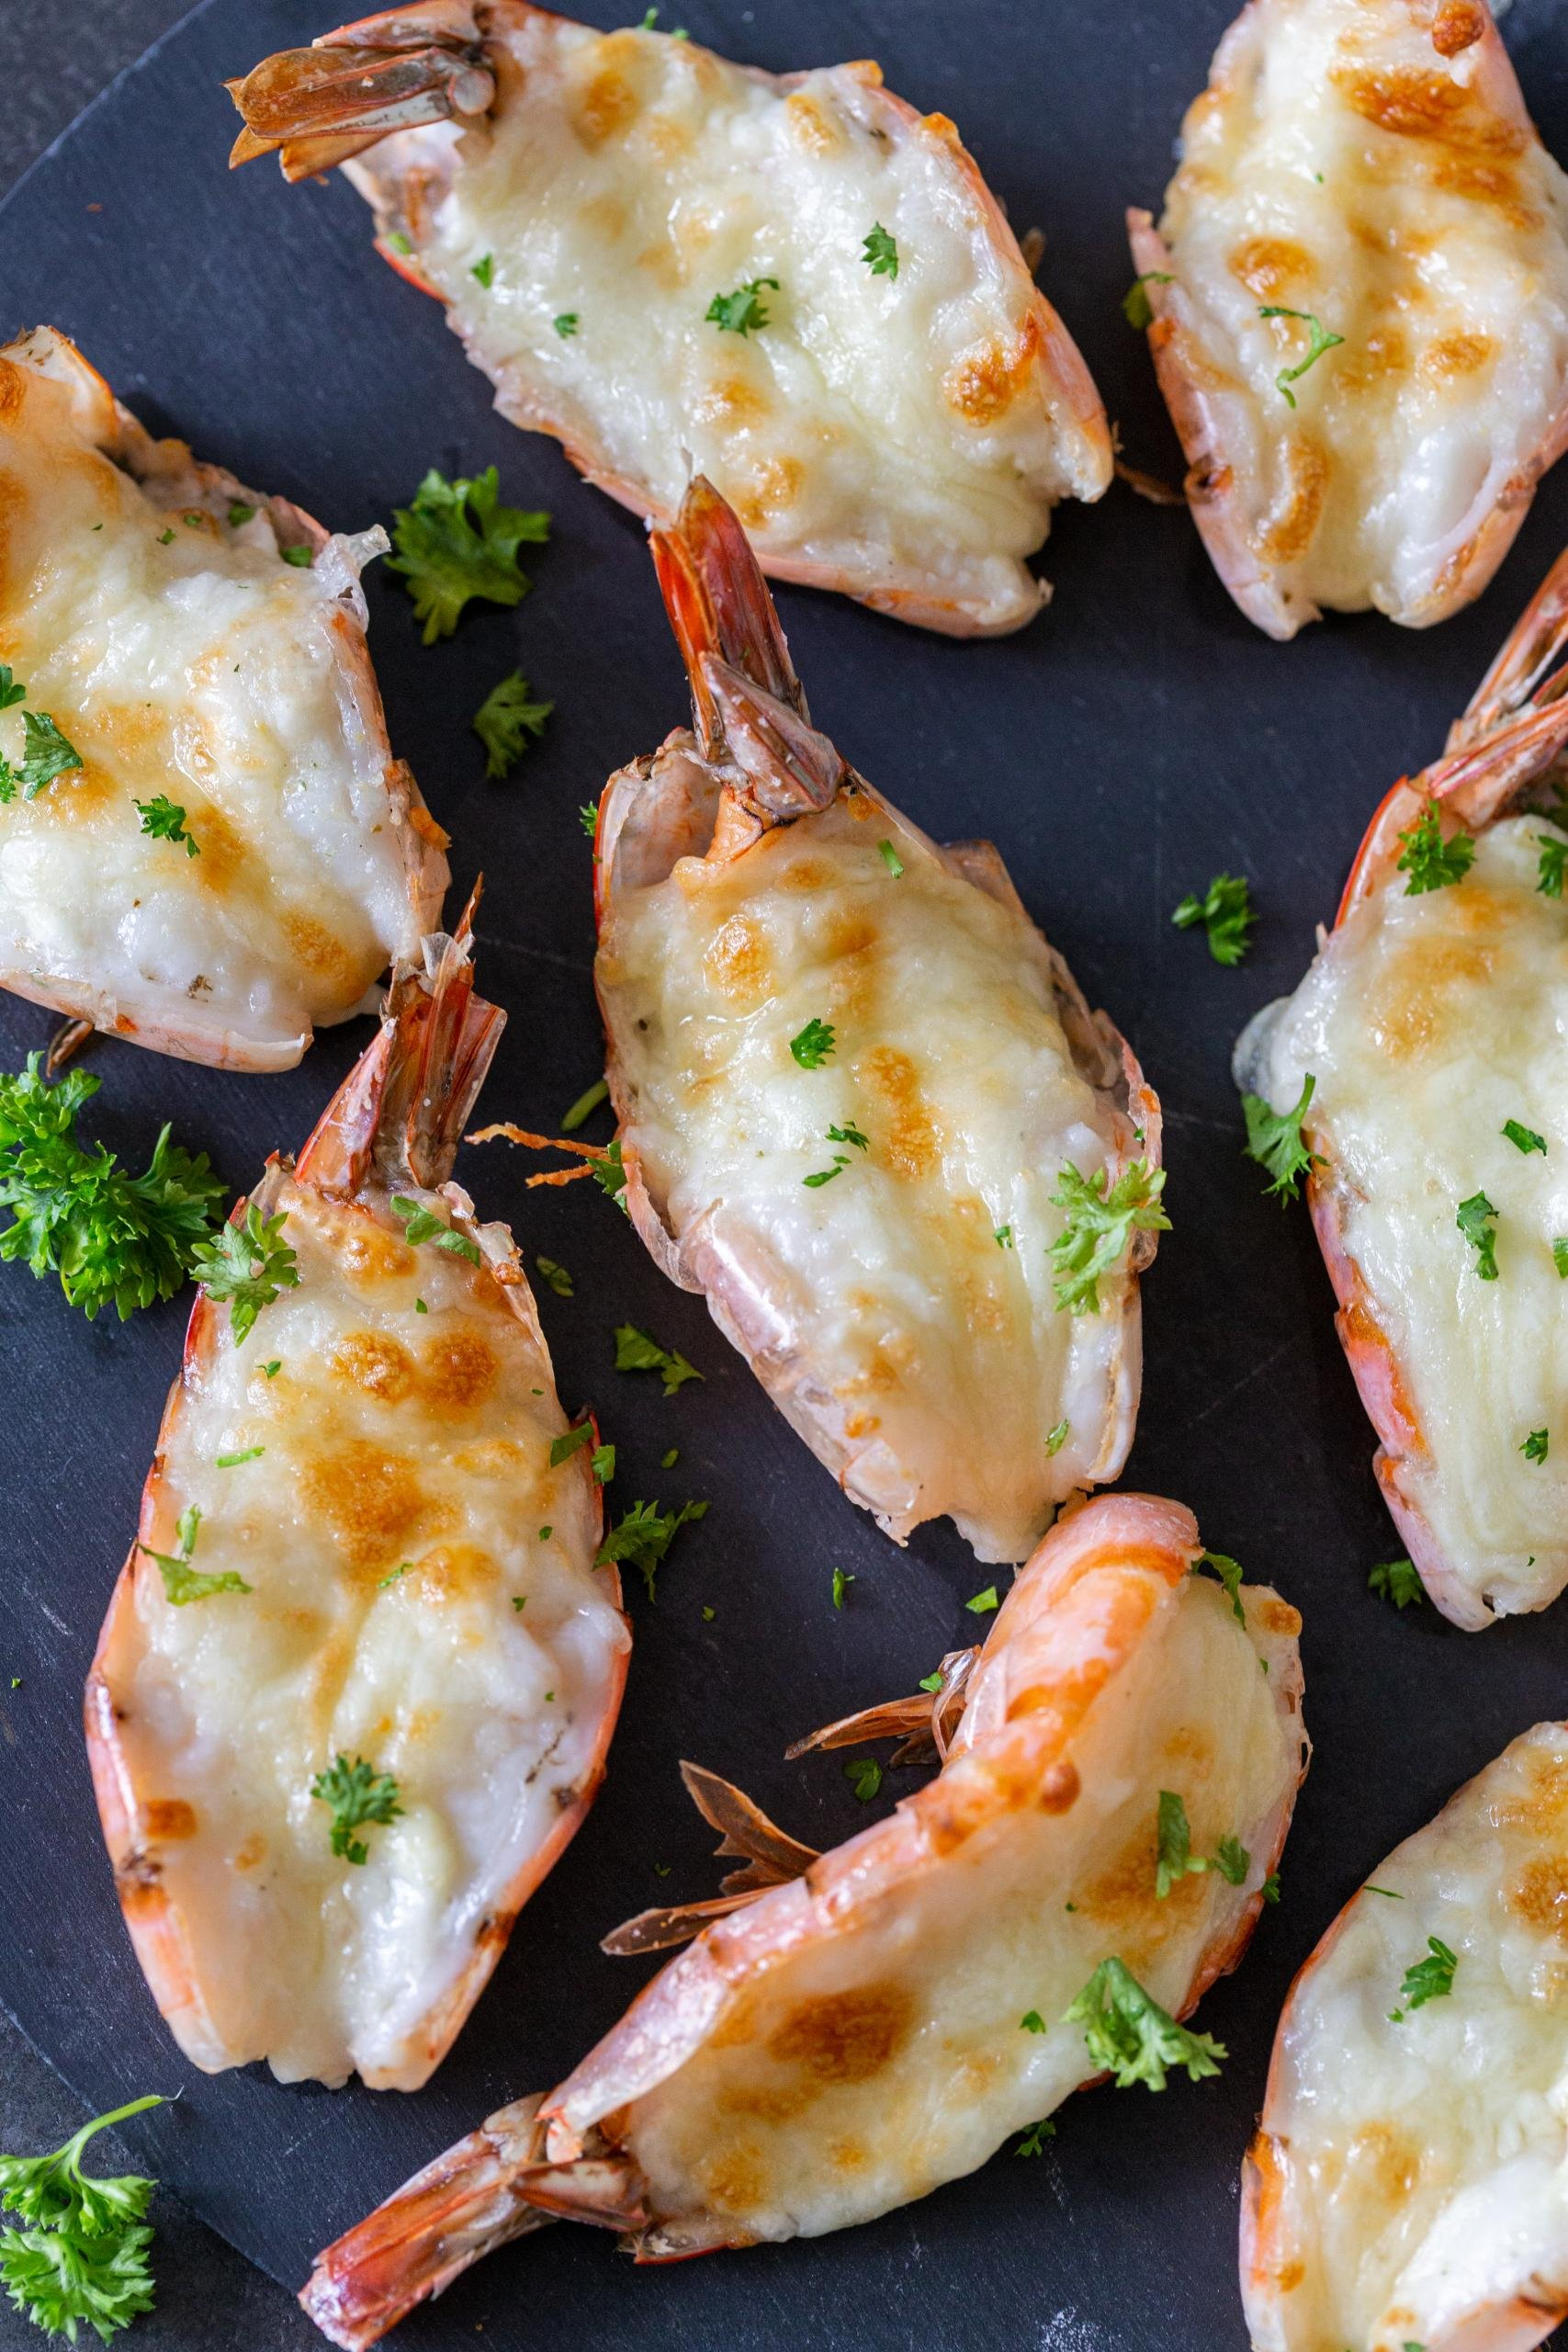 Baked cheesy shrimp